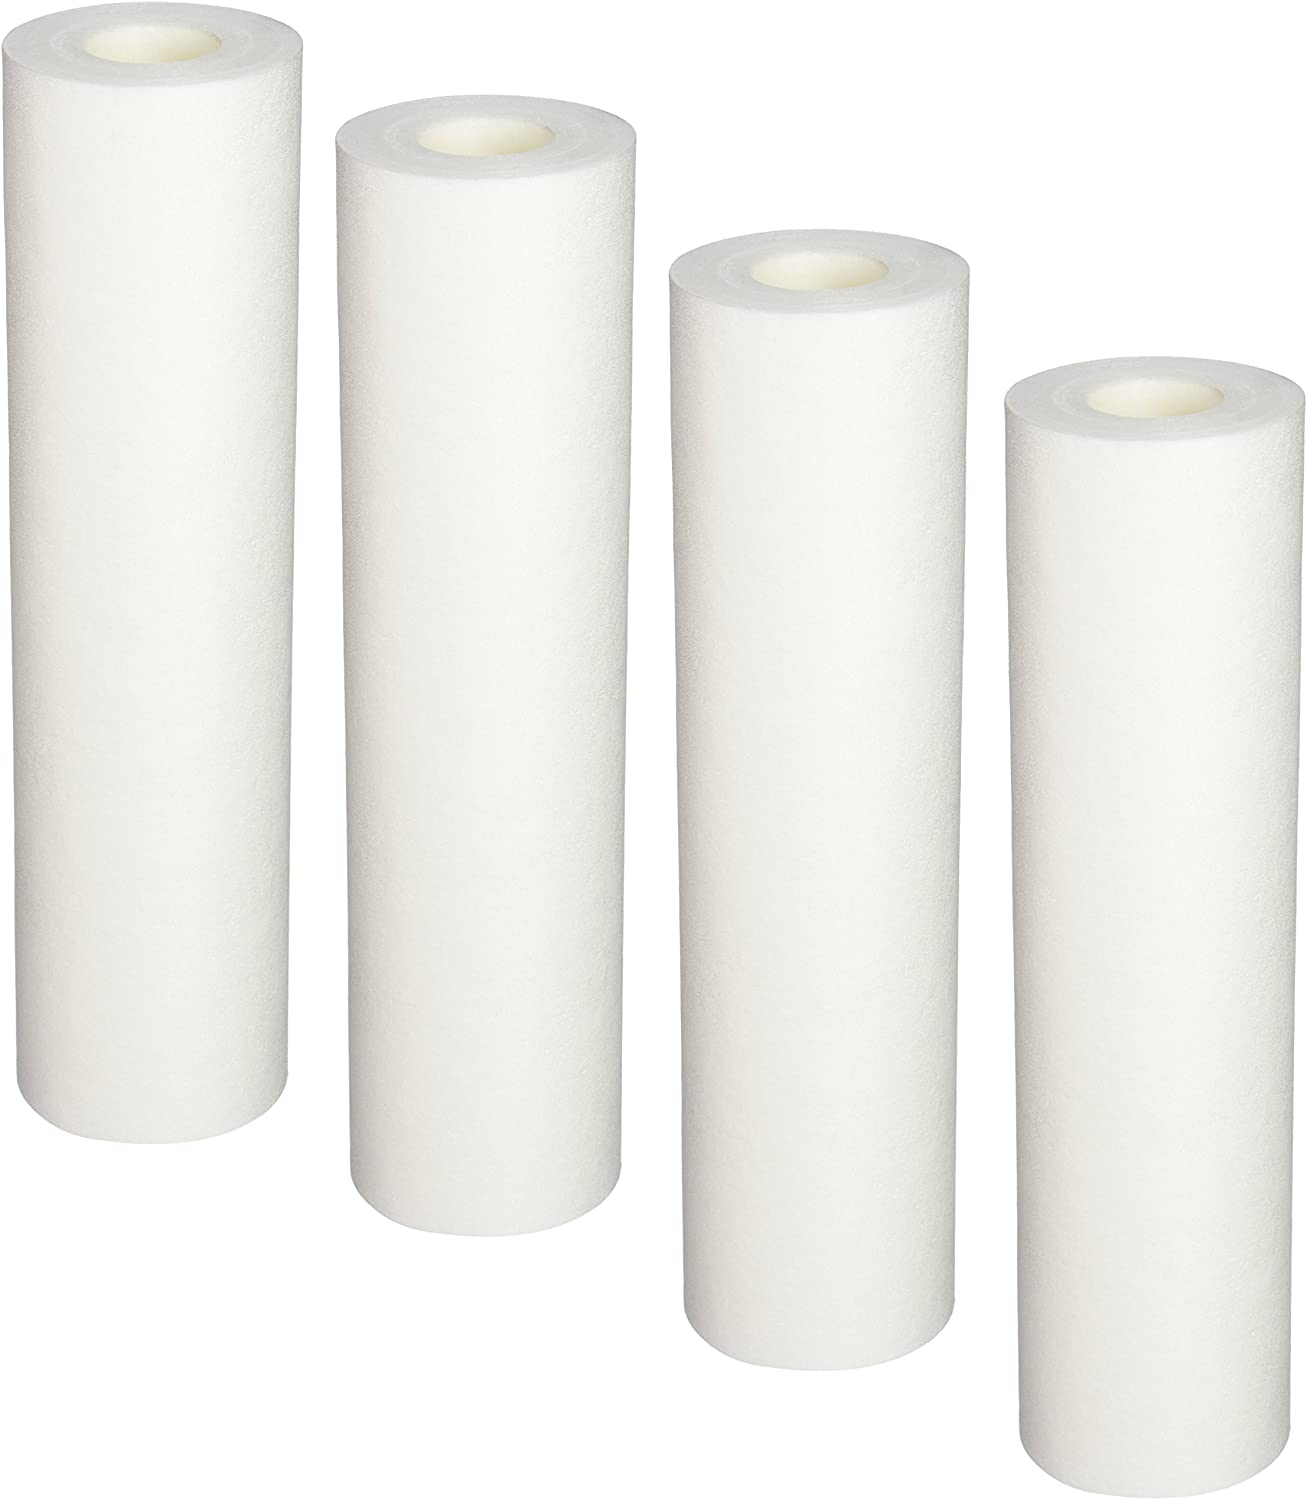 Sediment Pre-filters for Whole House Water Filter Systems Aquasana EQ-304 Replacement 10-Inch White,4-pack